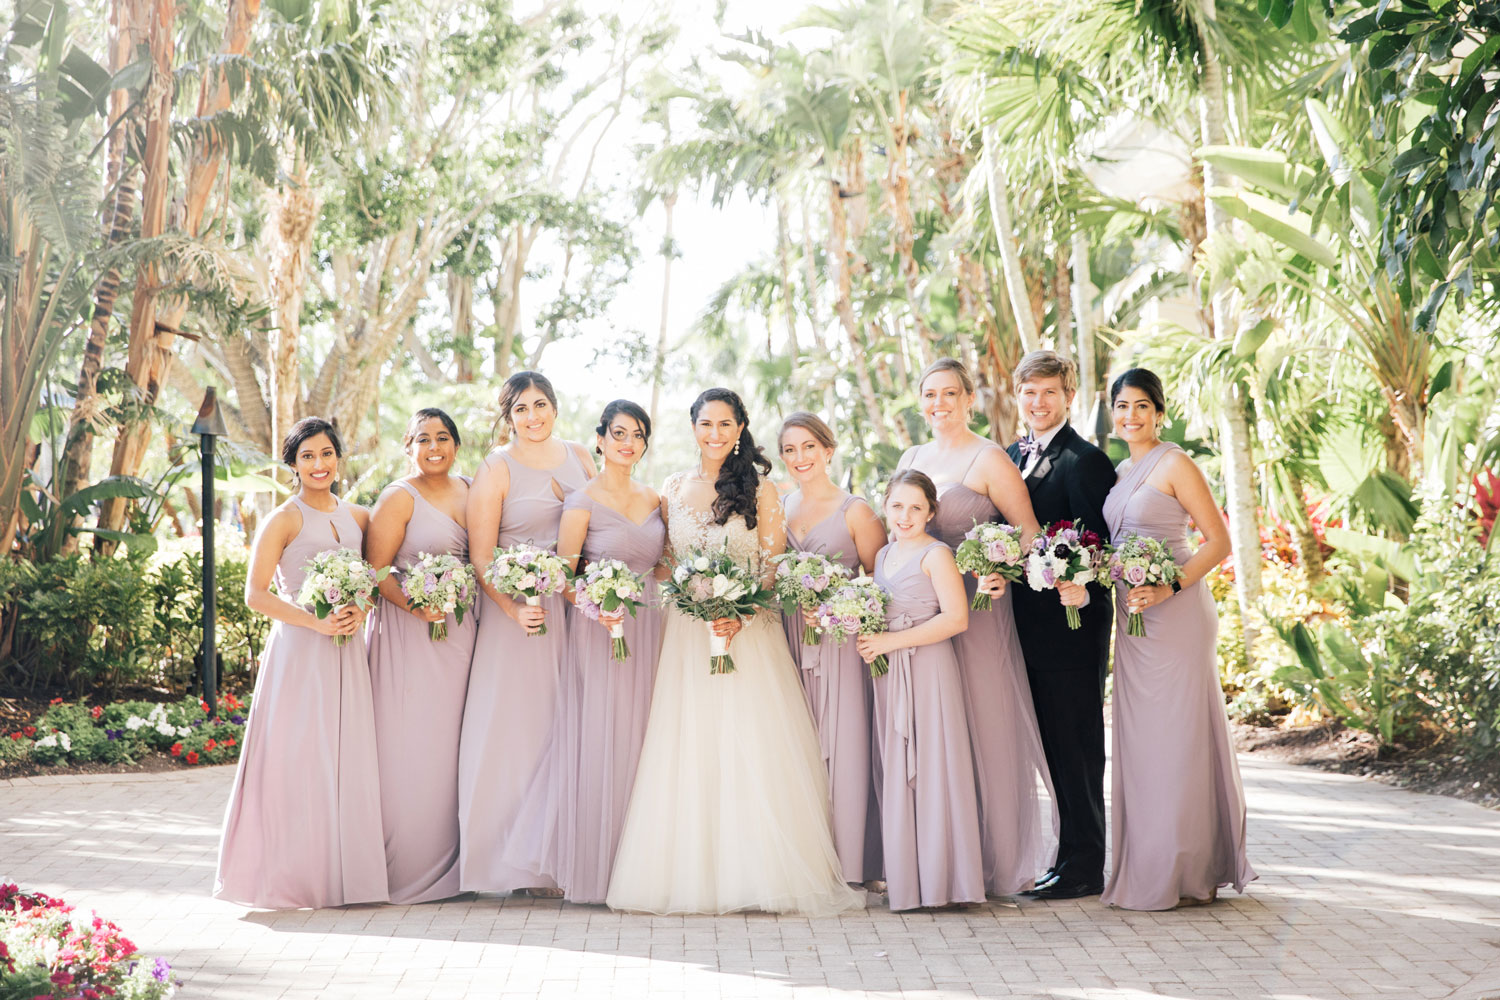 wedding party photograph bride bridesmaids and bridesman mixed gender bridal party photo